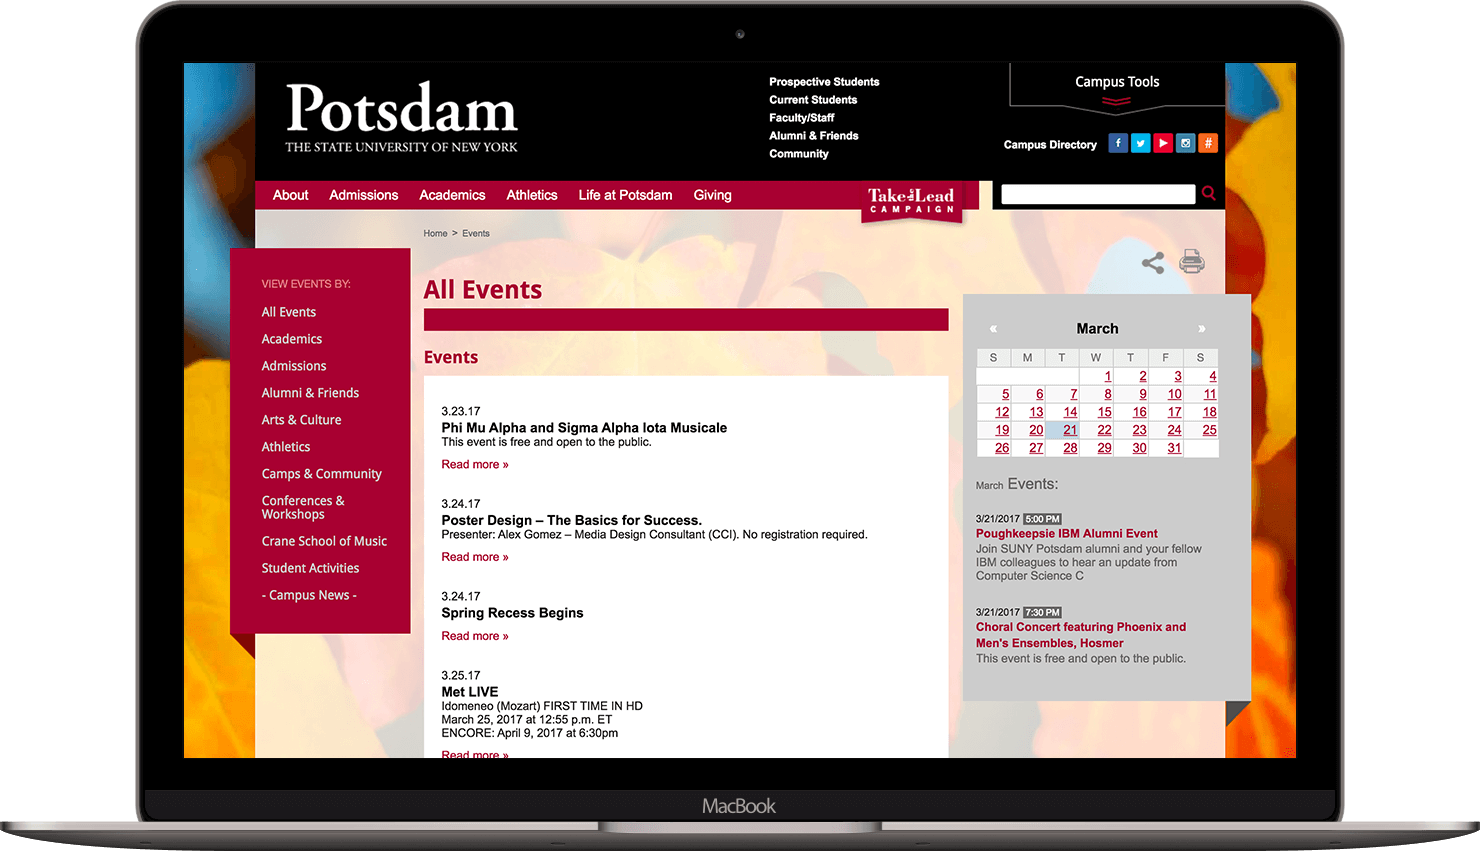 Potsdam Events Page